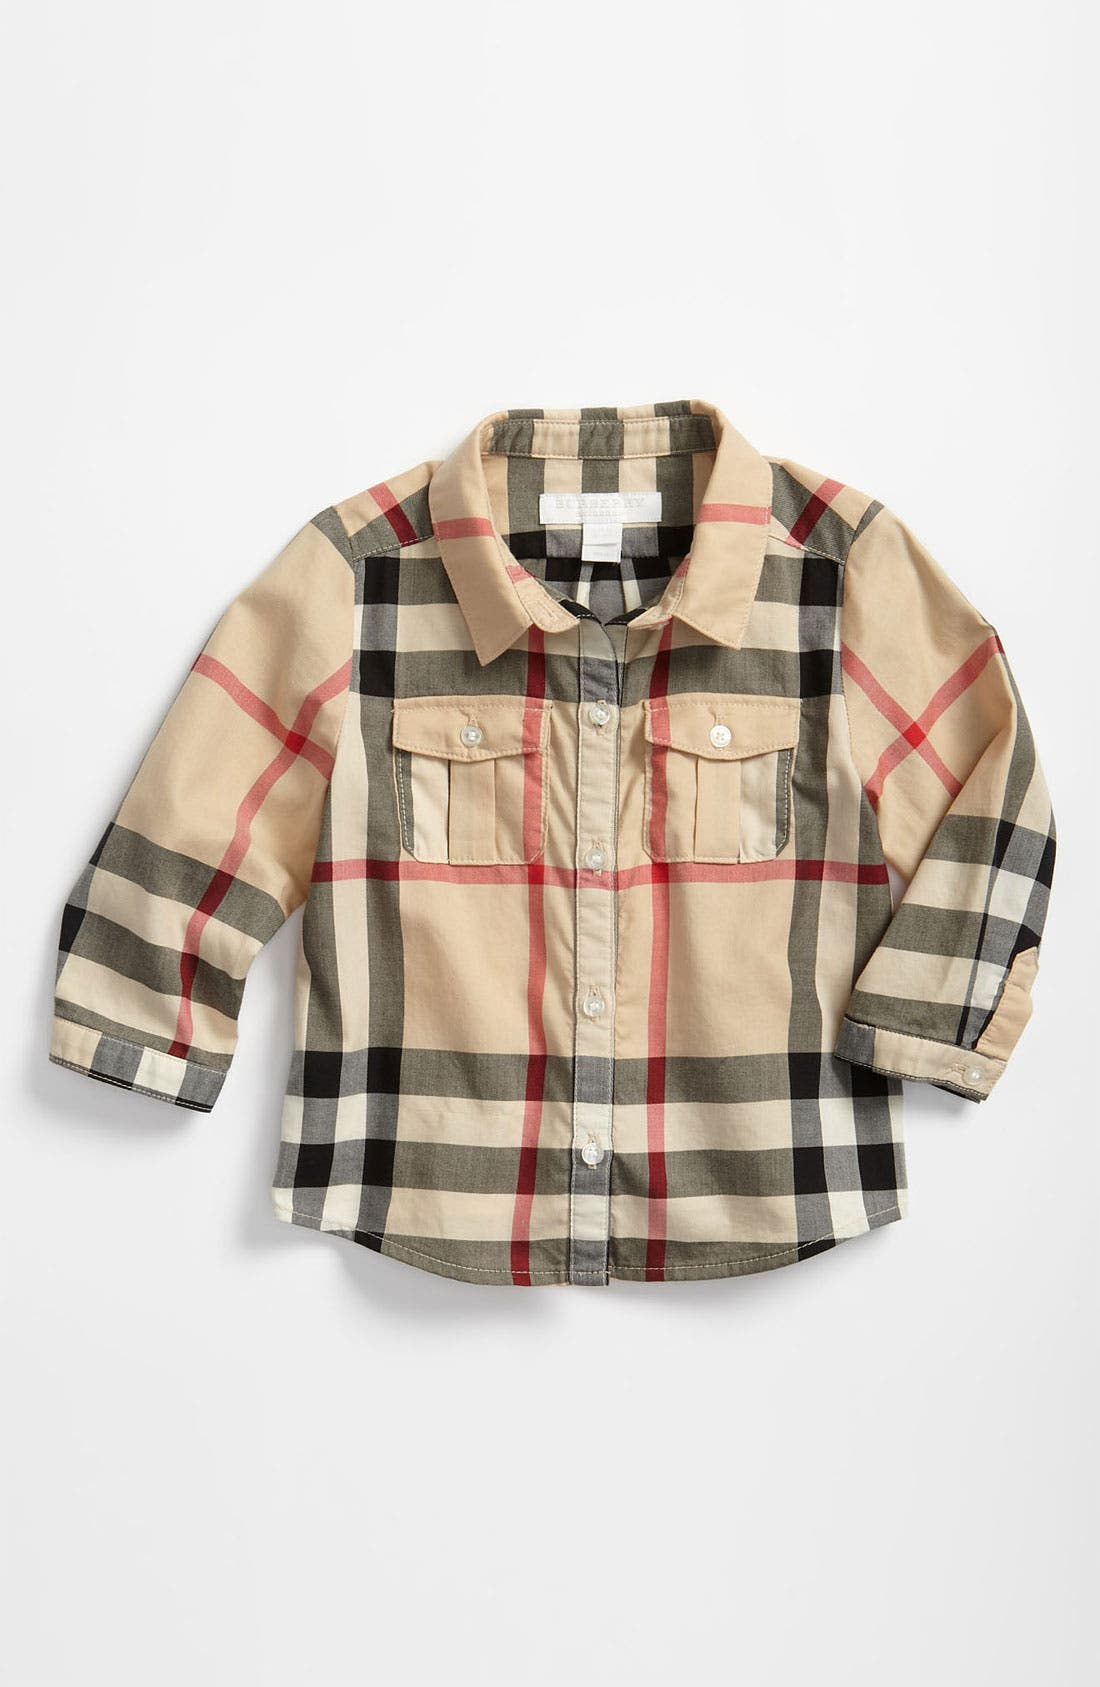 Alternate Image 1 Selected - Burberry Woven Shirt (Baby)